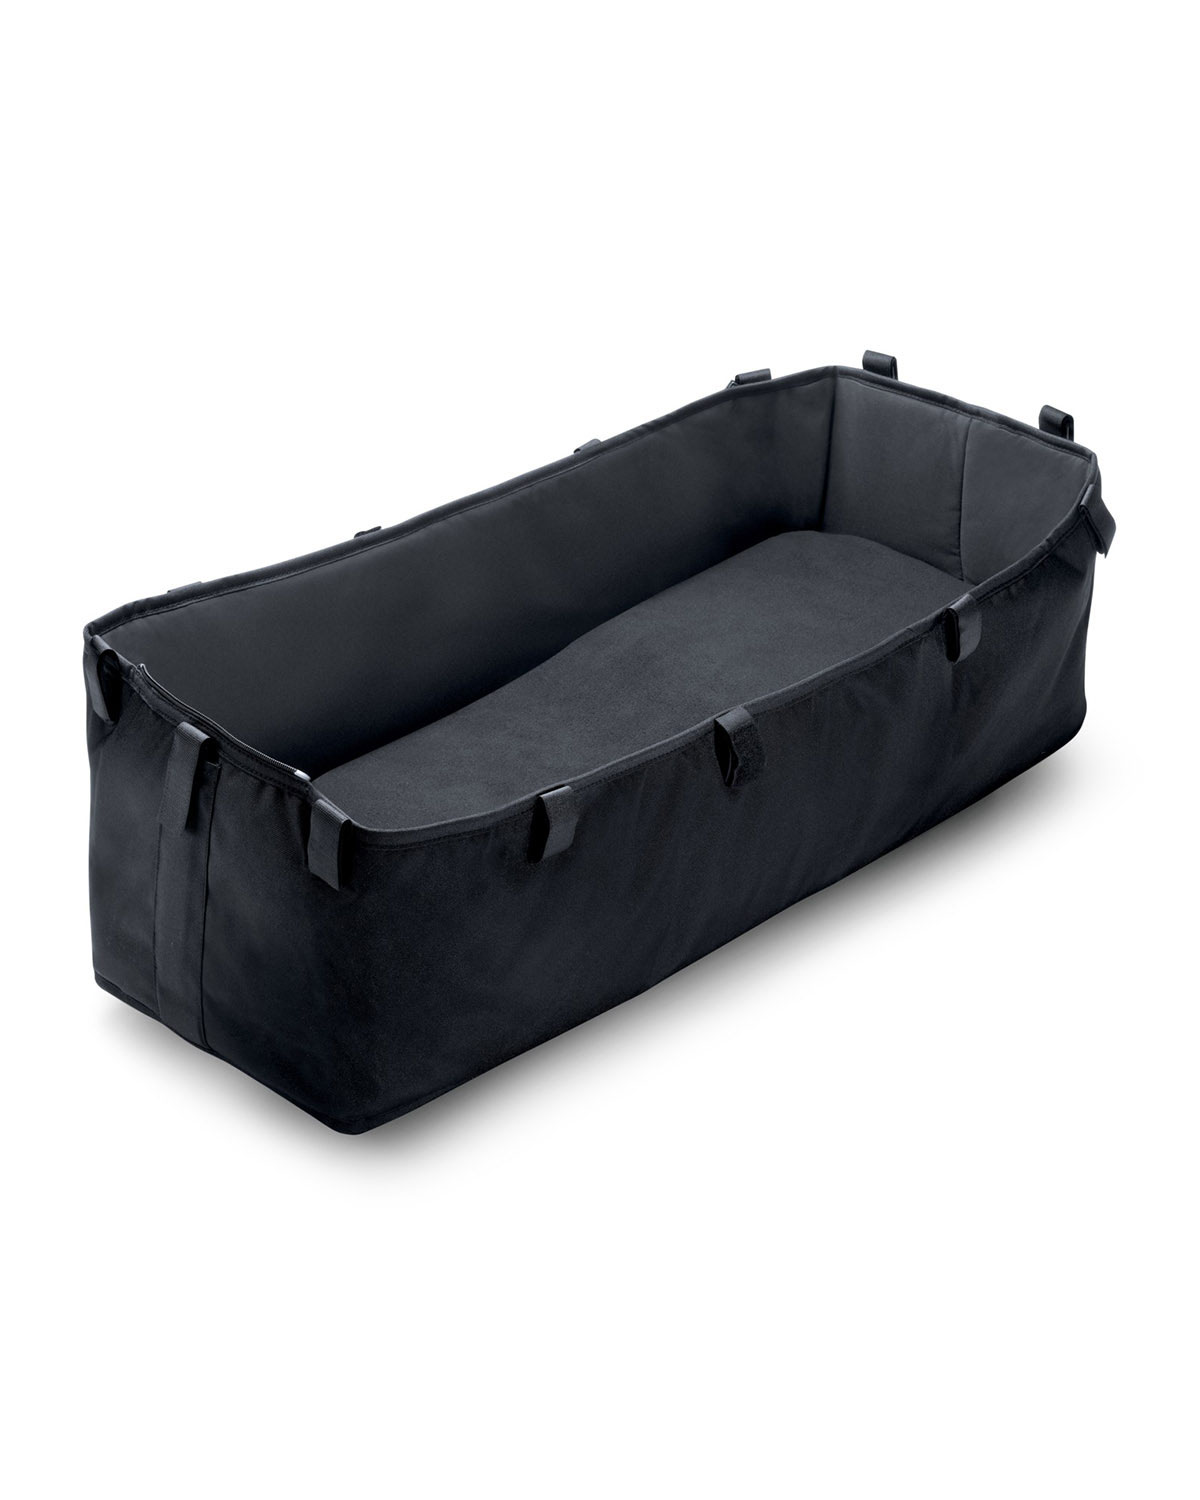 Donkey Bassinet Base Black